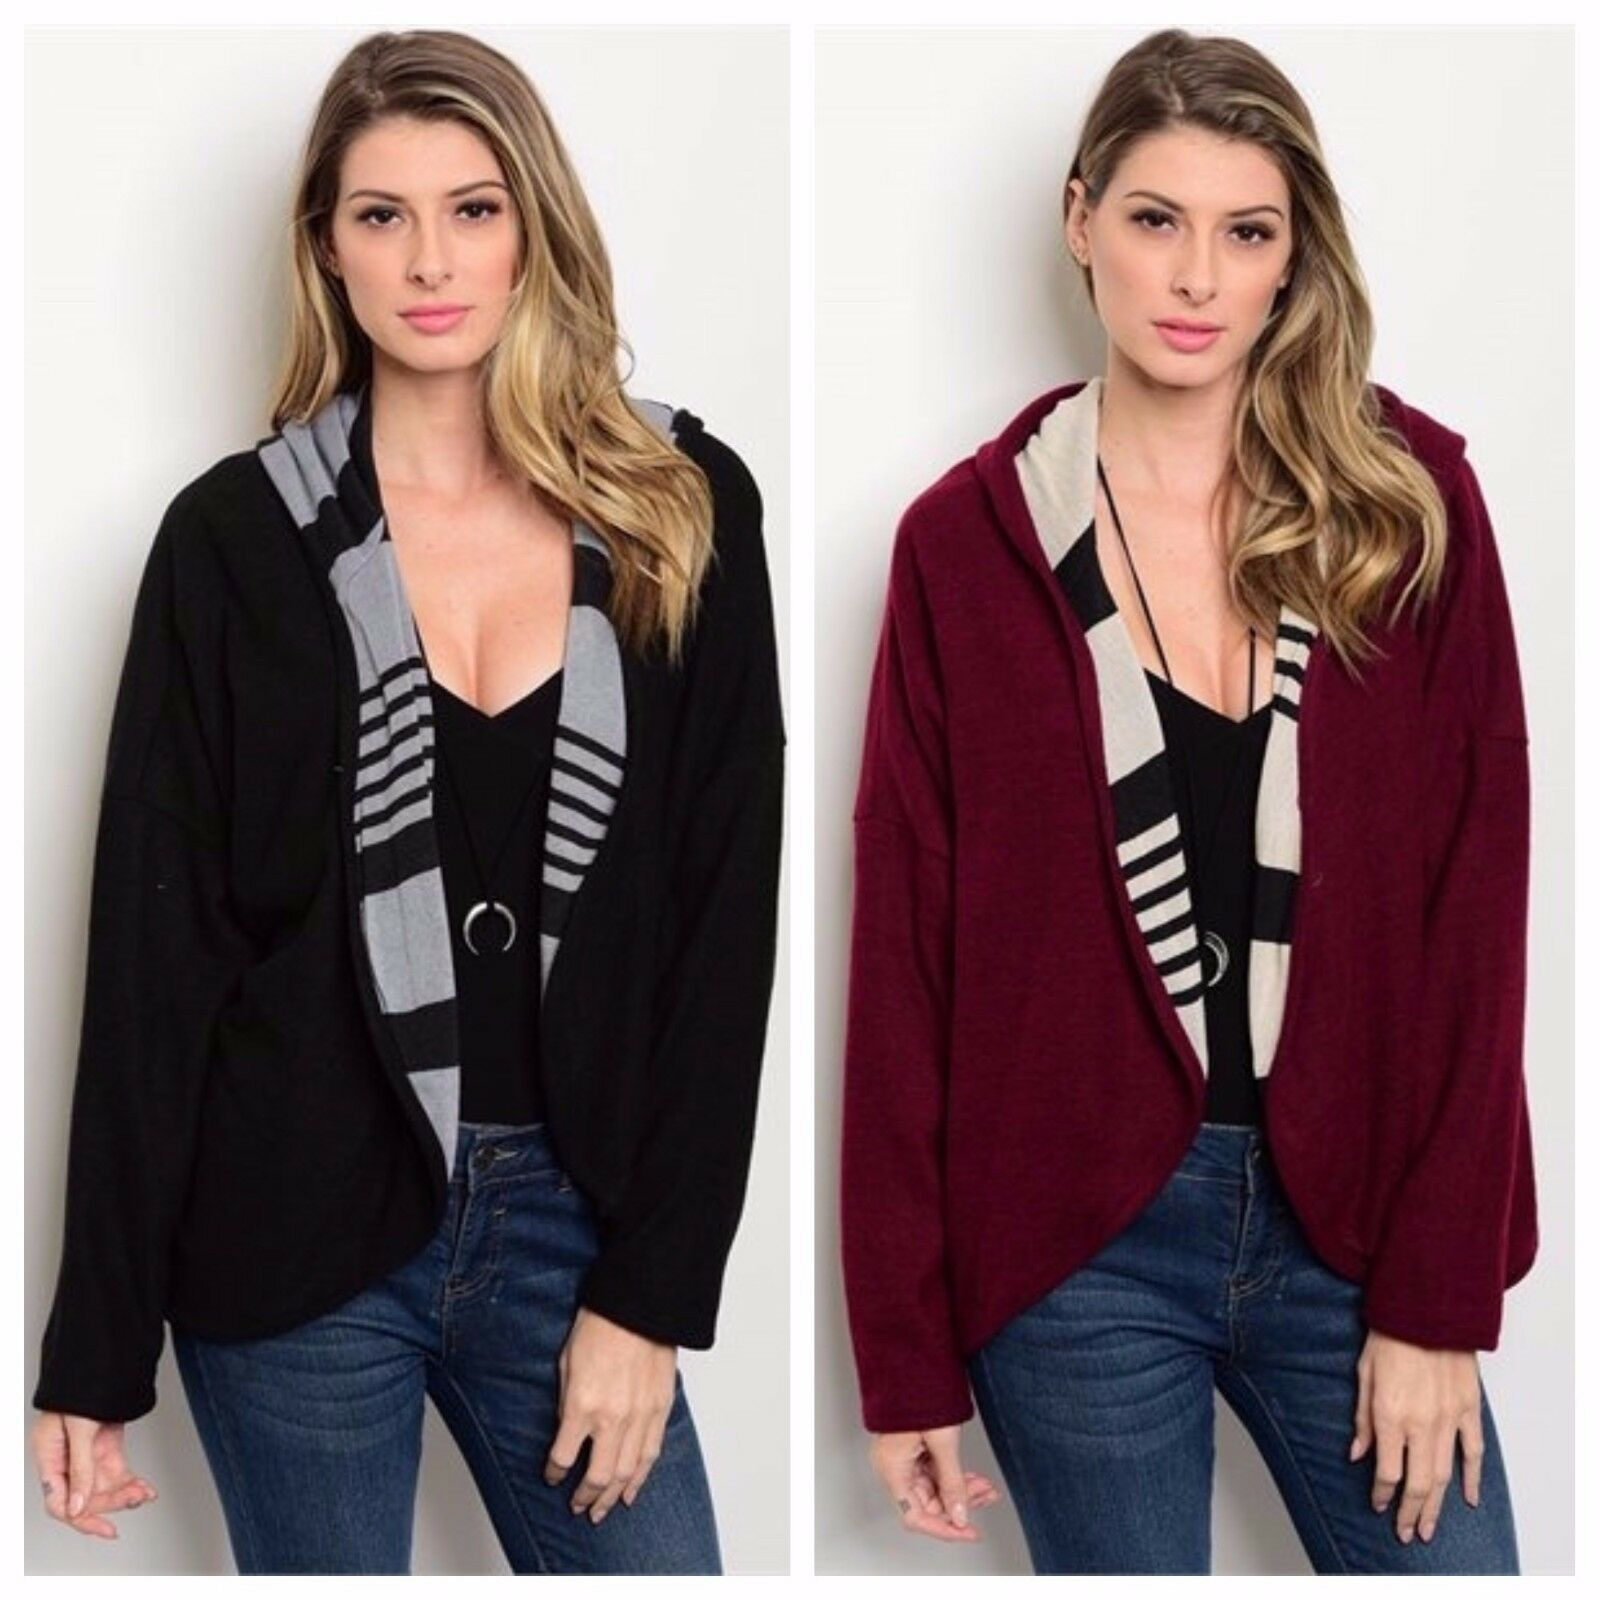 NEW Boutique Oddi CONTRAST STRIPE Hooded Sweater - 2 colors - Size S, M, L